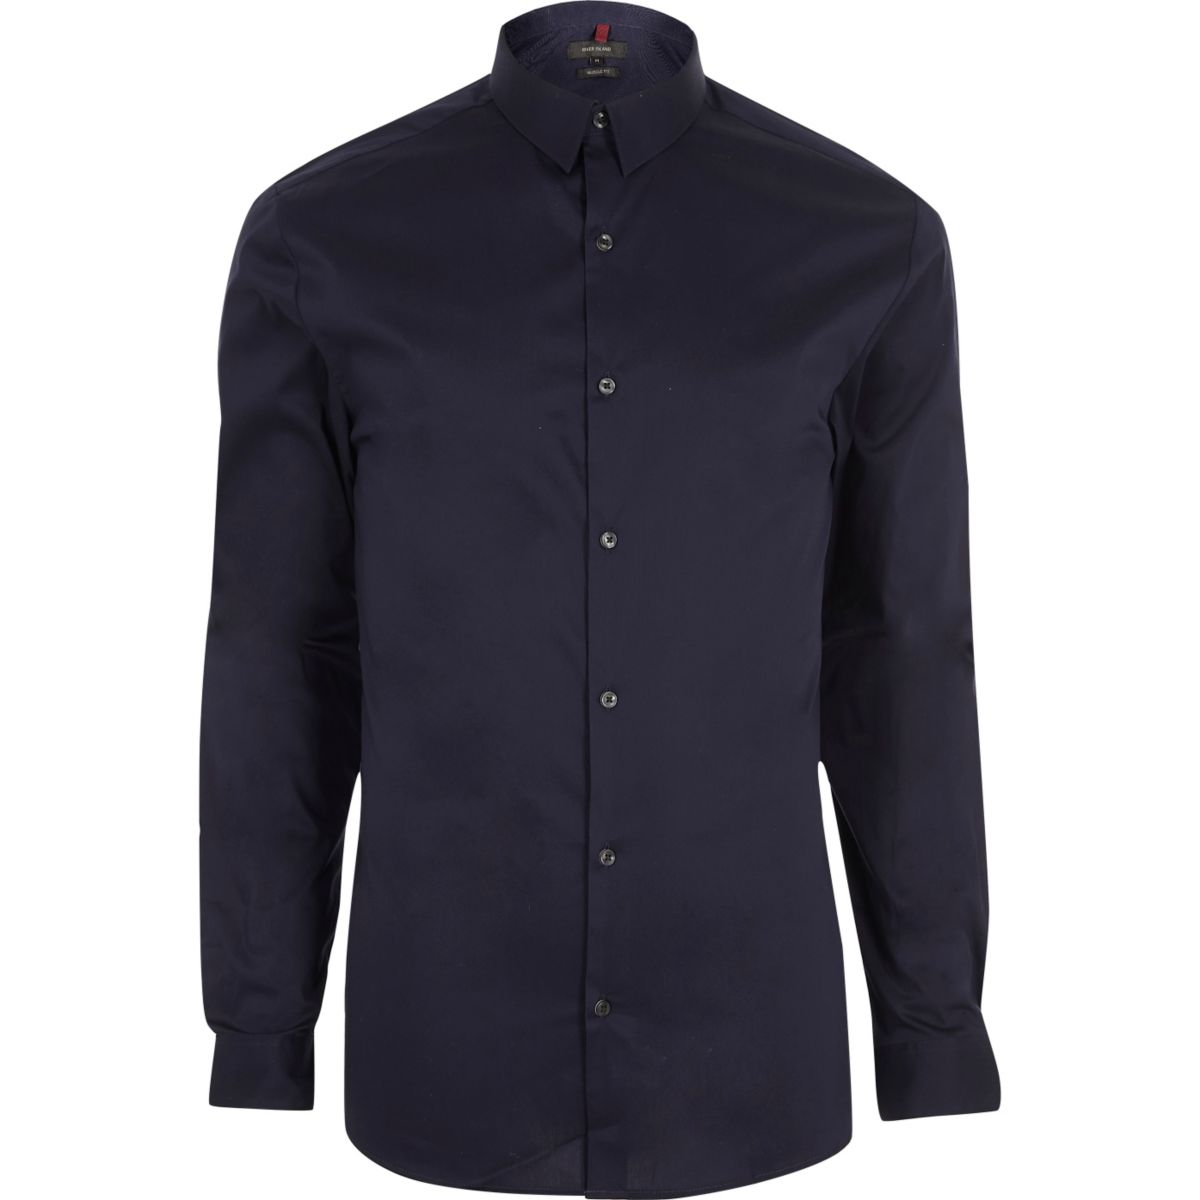 Navy blue muscle fit long sleeve shirt